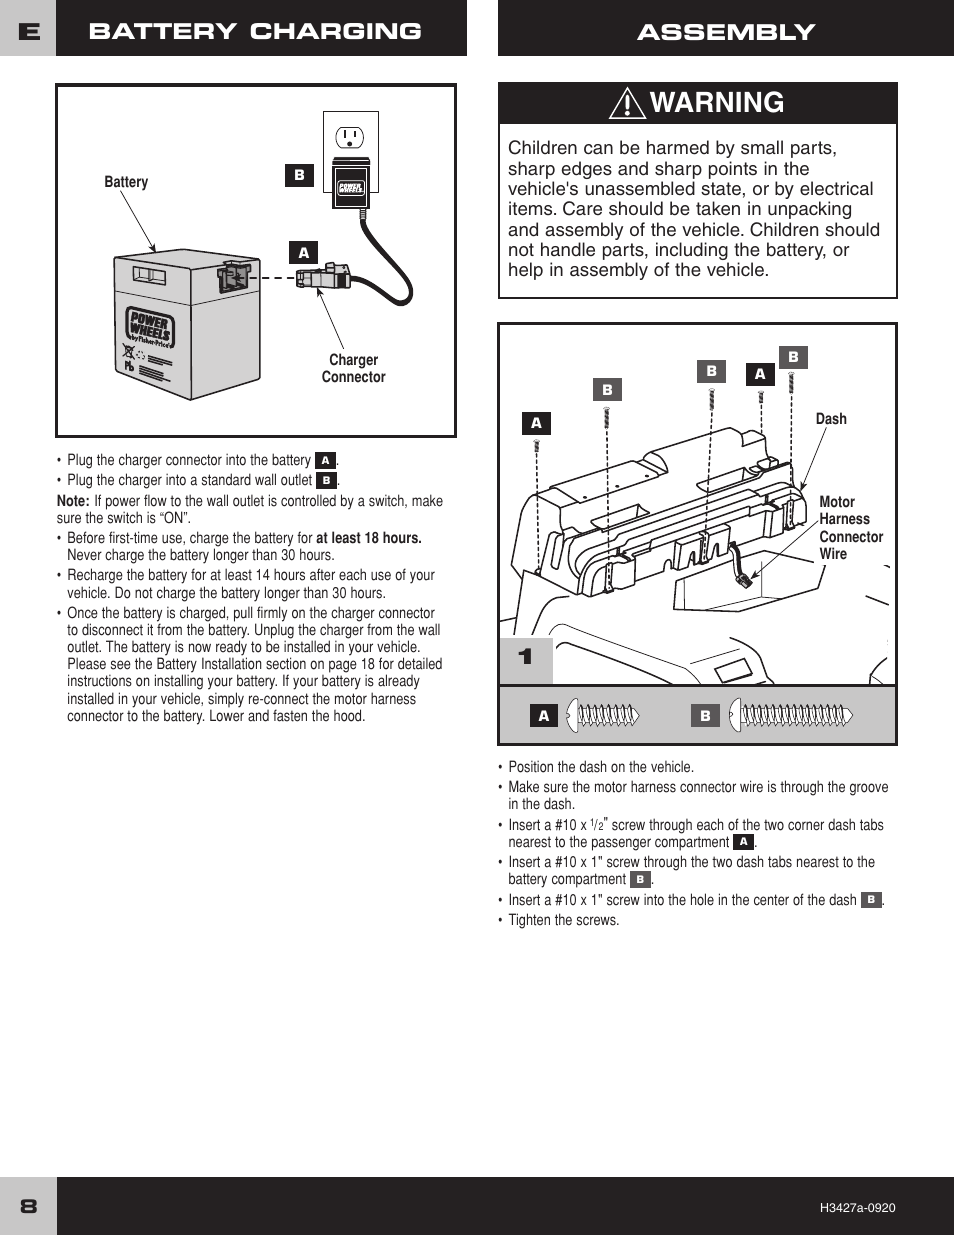 hight resolution of warning 1assembly battery charging fisher price barbie jammin jeep h3427 user manual page 8 28